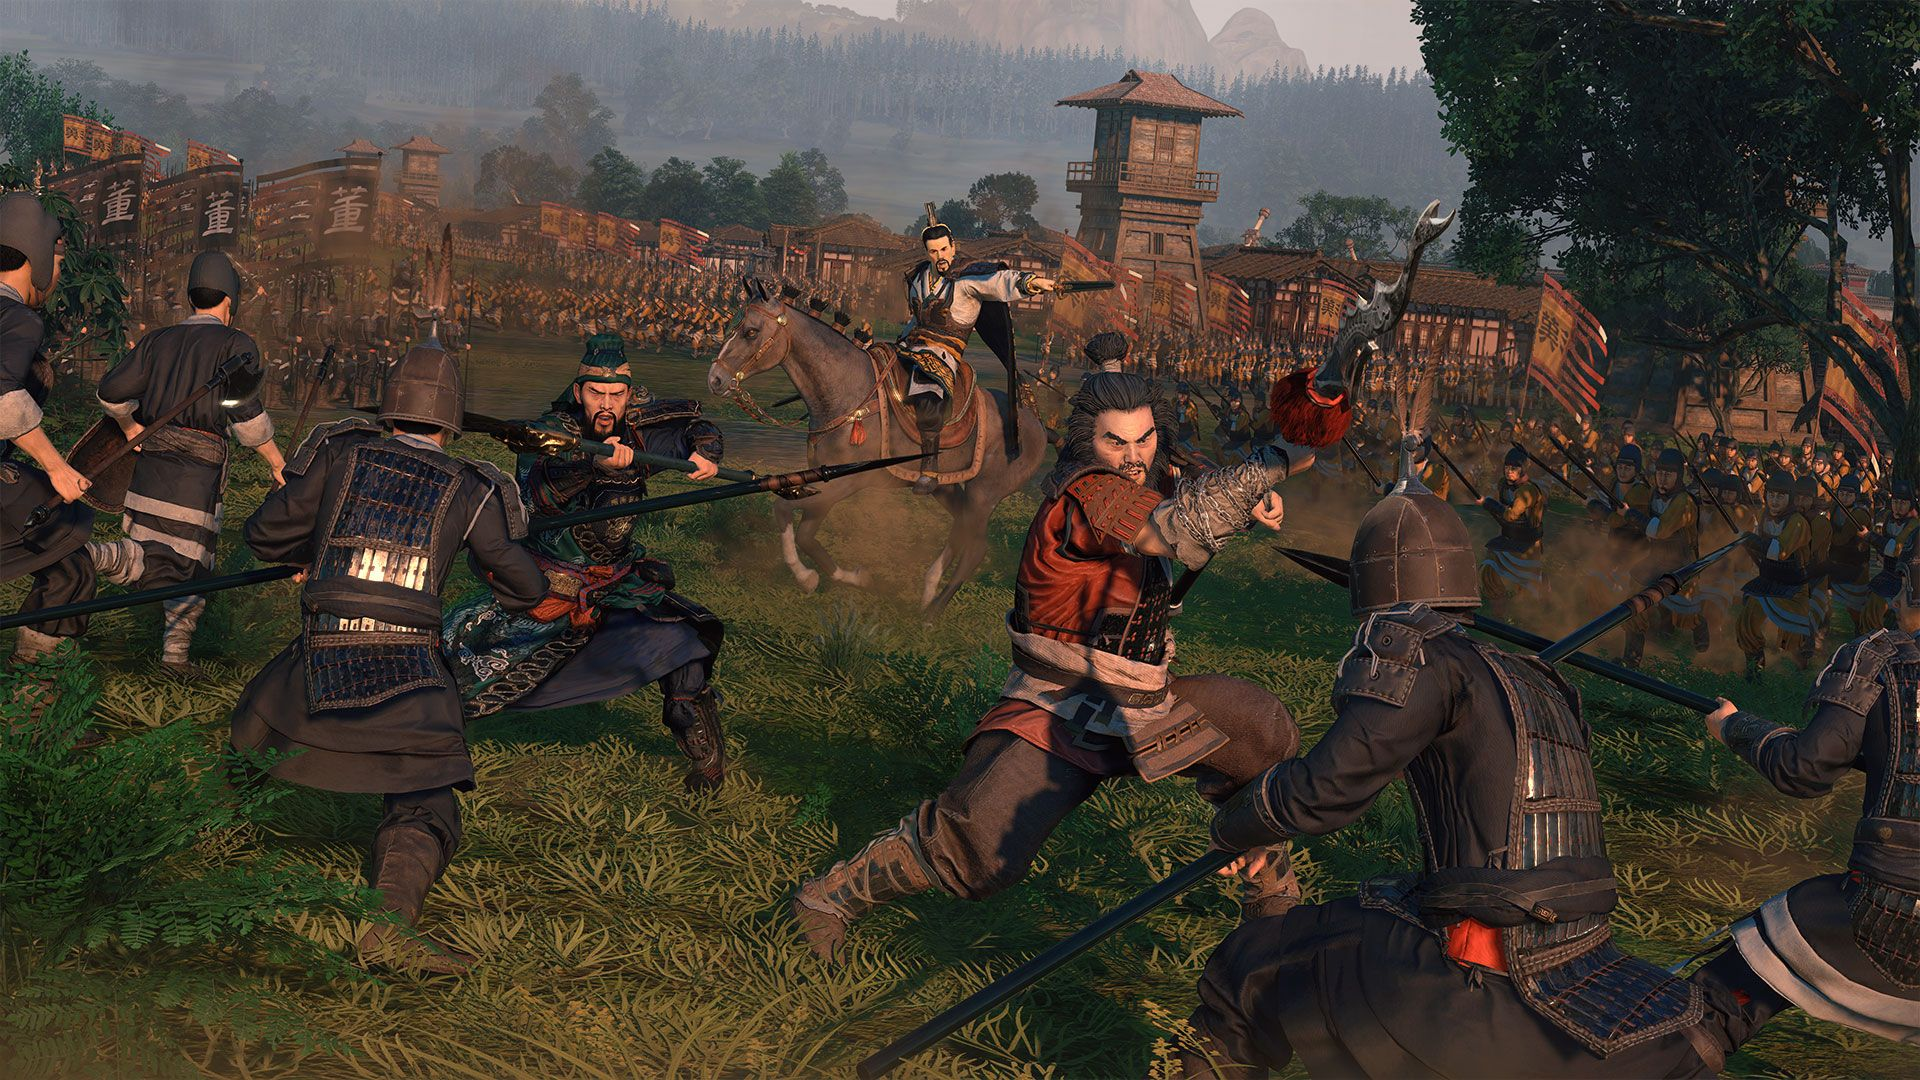 total-war-three-kingdoms-single-player-campaign-preview-5.jpg